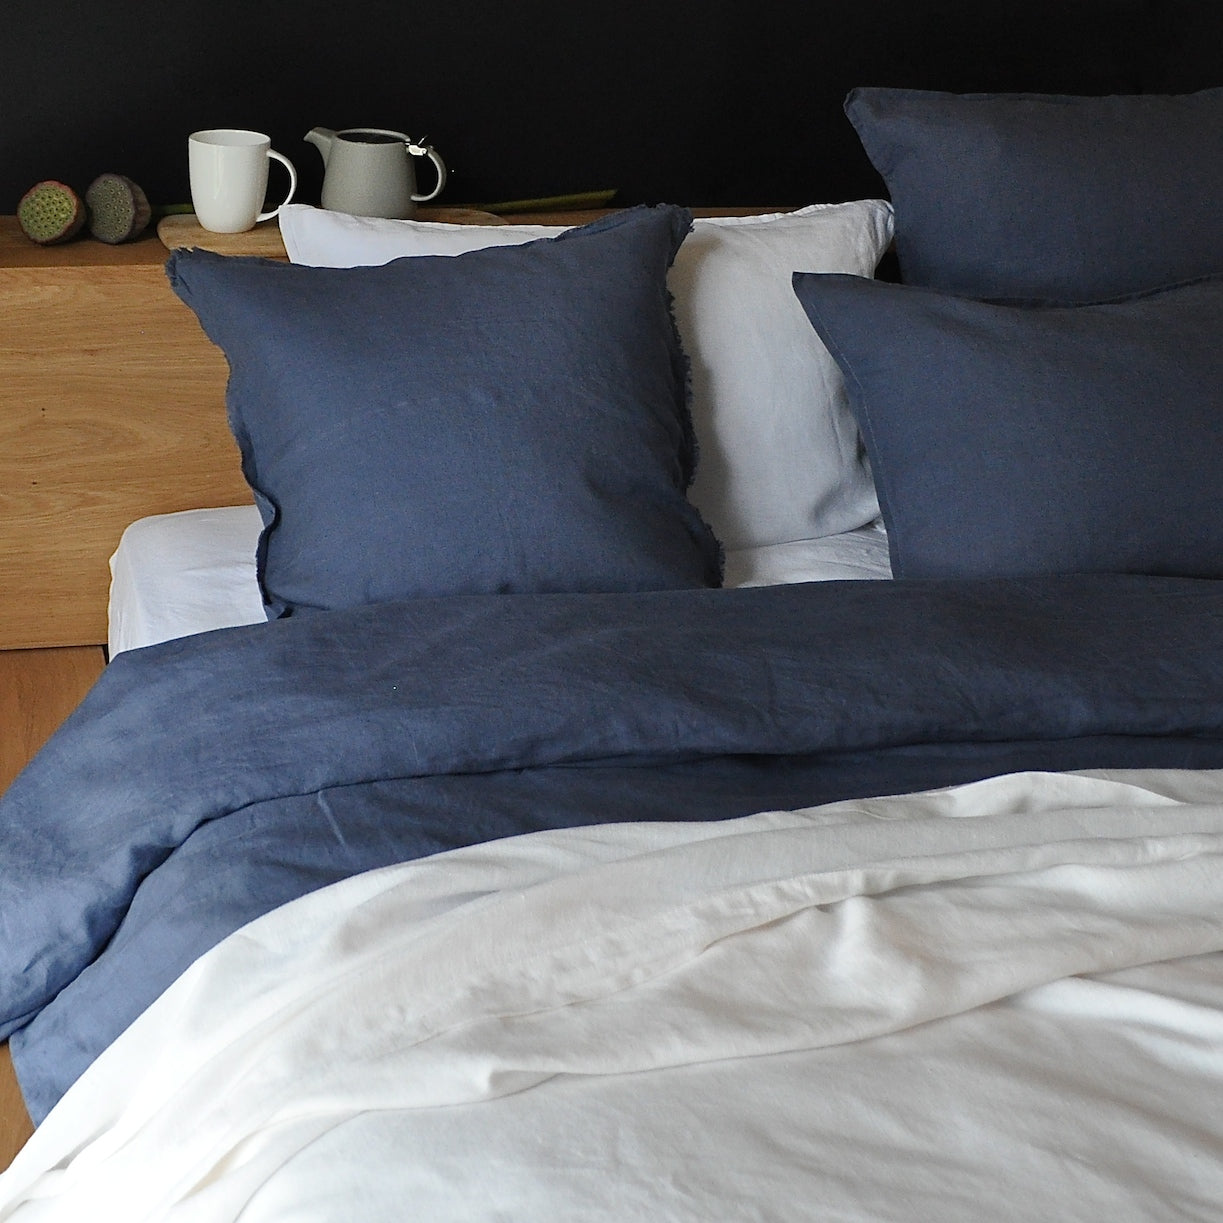 relaxed lifestyle french portugal natural is hero flax woven certified organic our comforter and black duvetcover duvet cover organiclinenchambray products from in linen